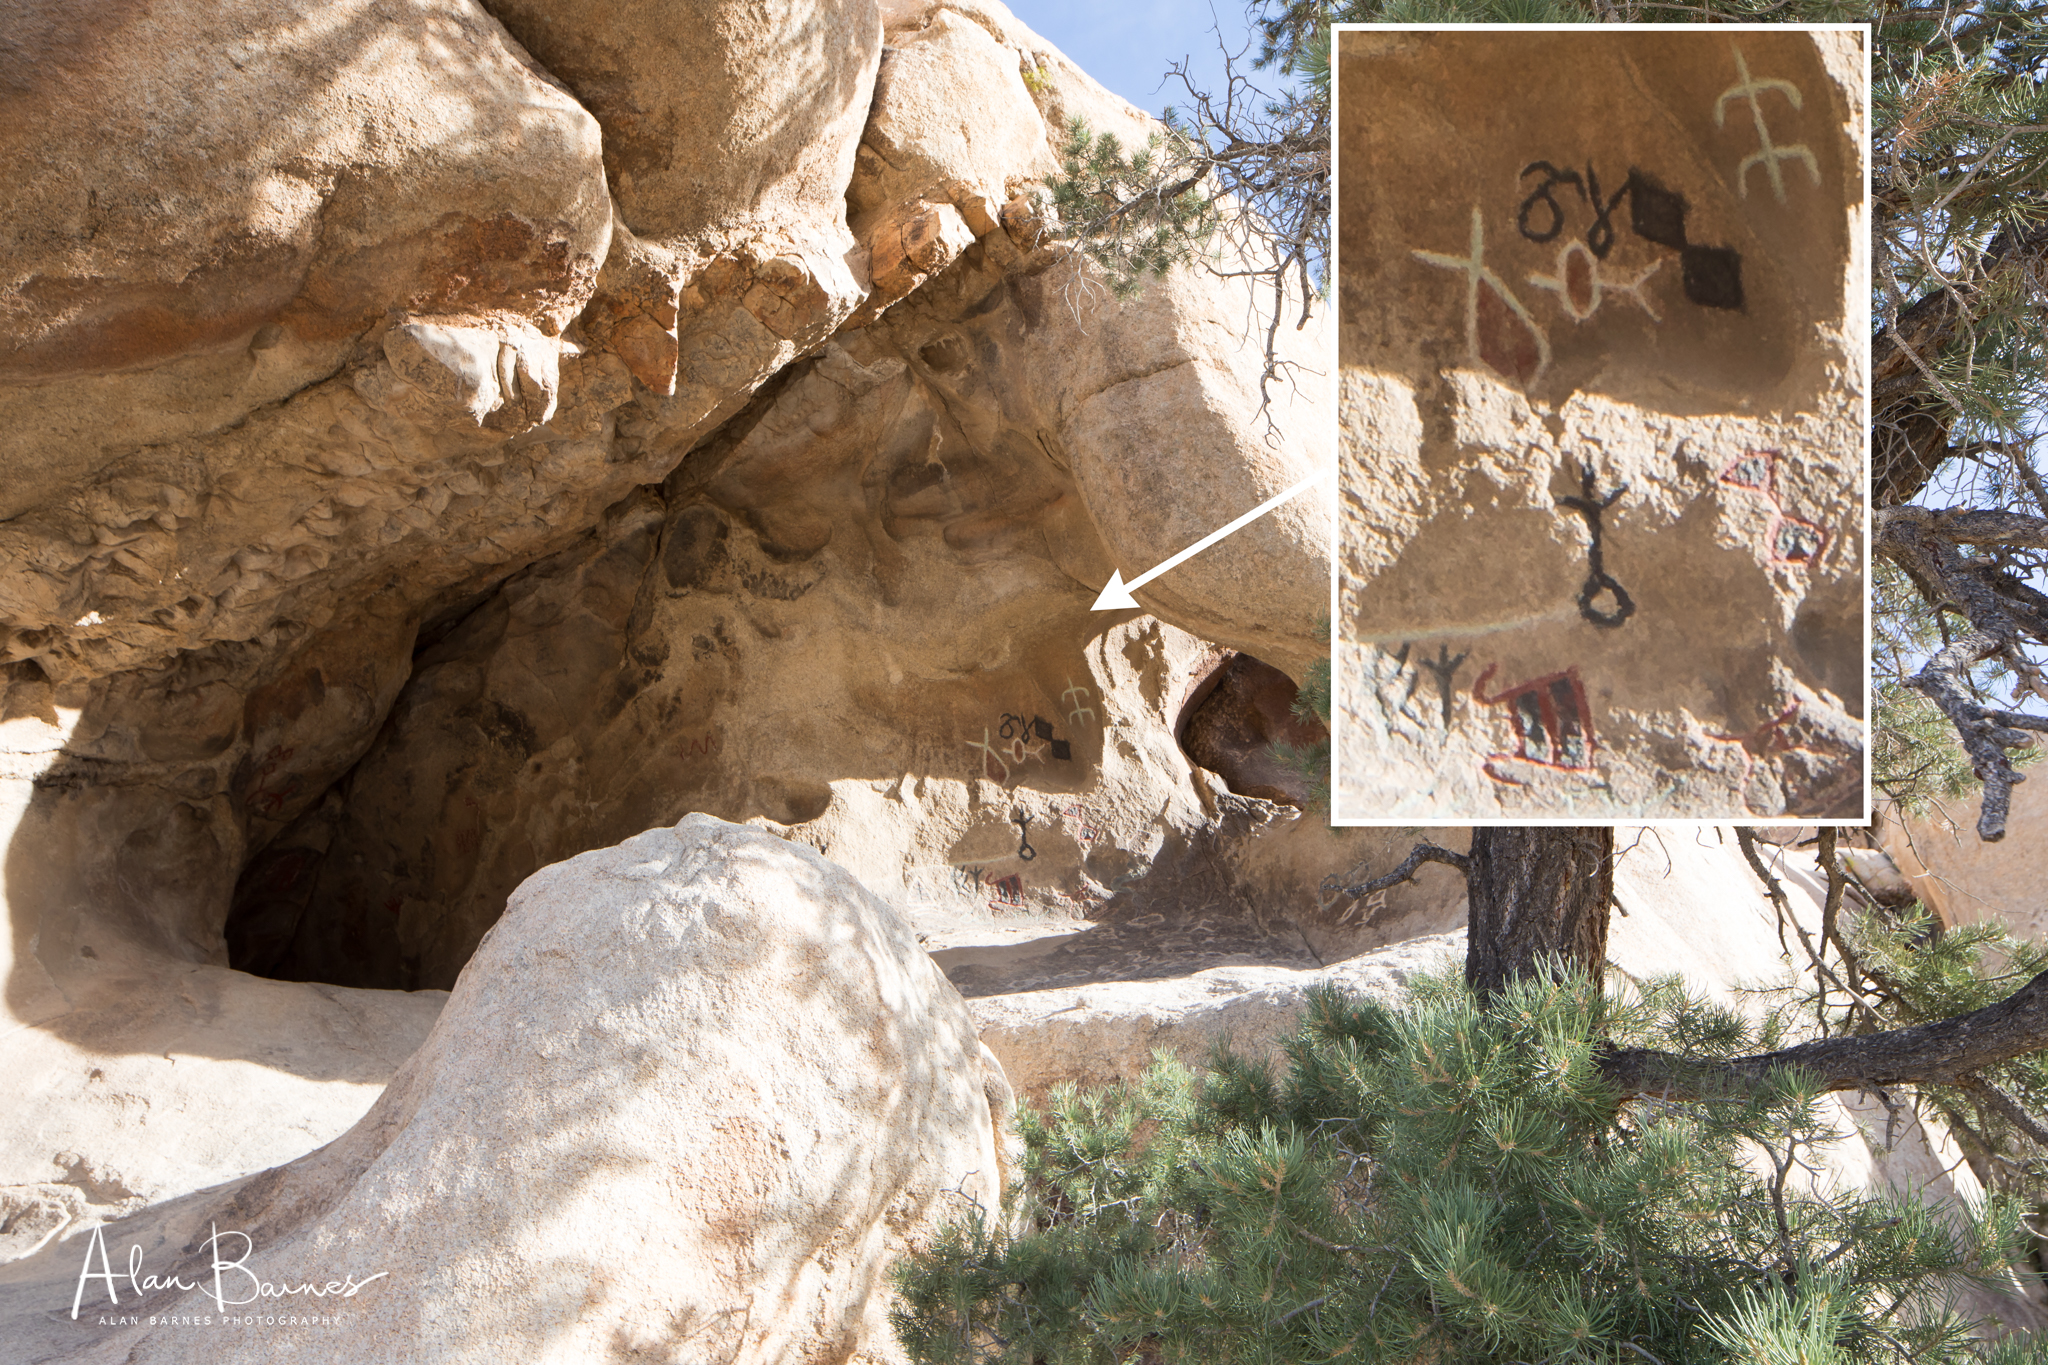 Petroglyphs left by Native Americans, were not clear enough for a Hollywood film production team so they coloured them in and added to them. Unforgivable.